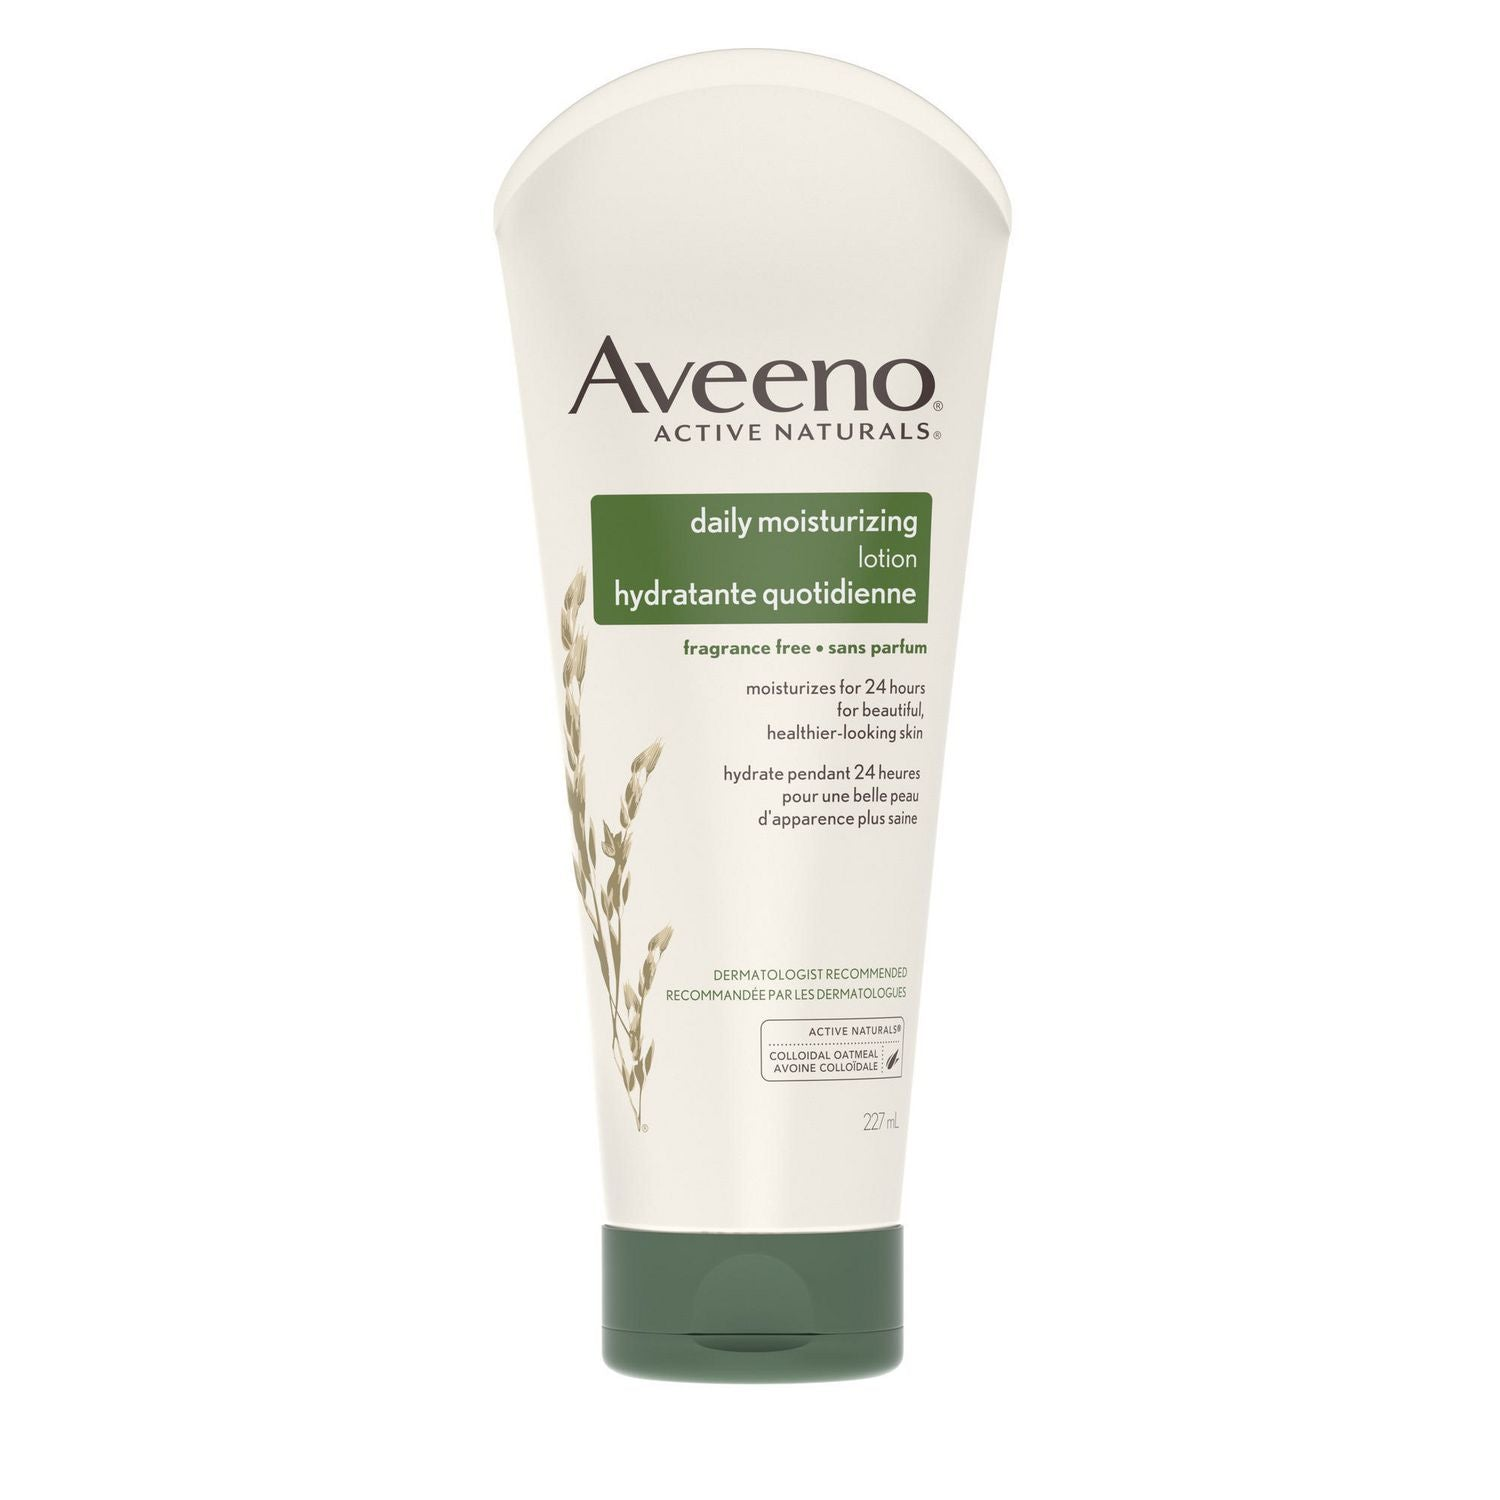 AVEENO ACTIVE NATURALS DAILY MOISTURIZING LOTION 8OZ